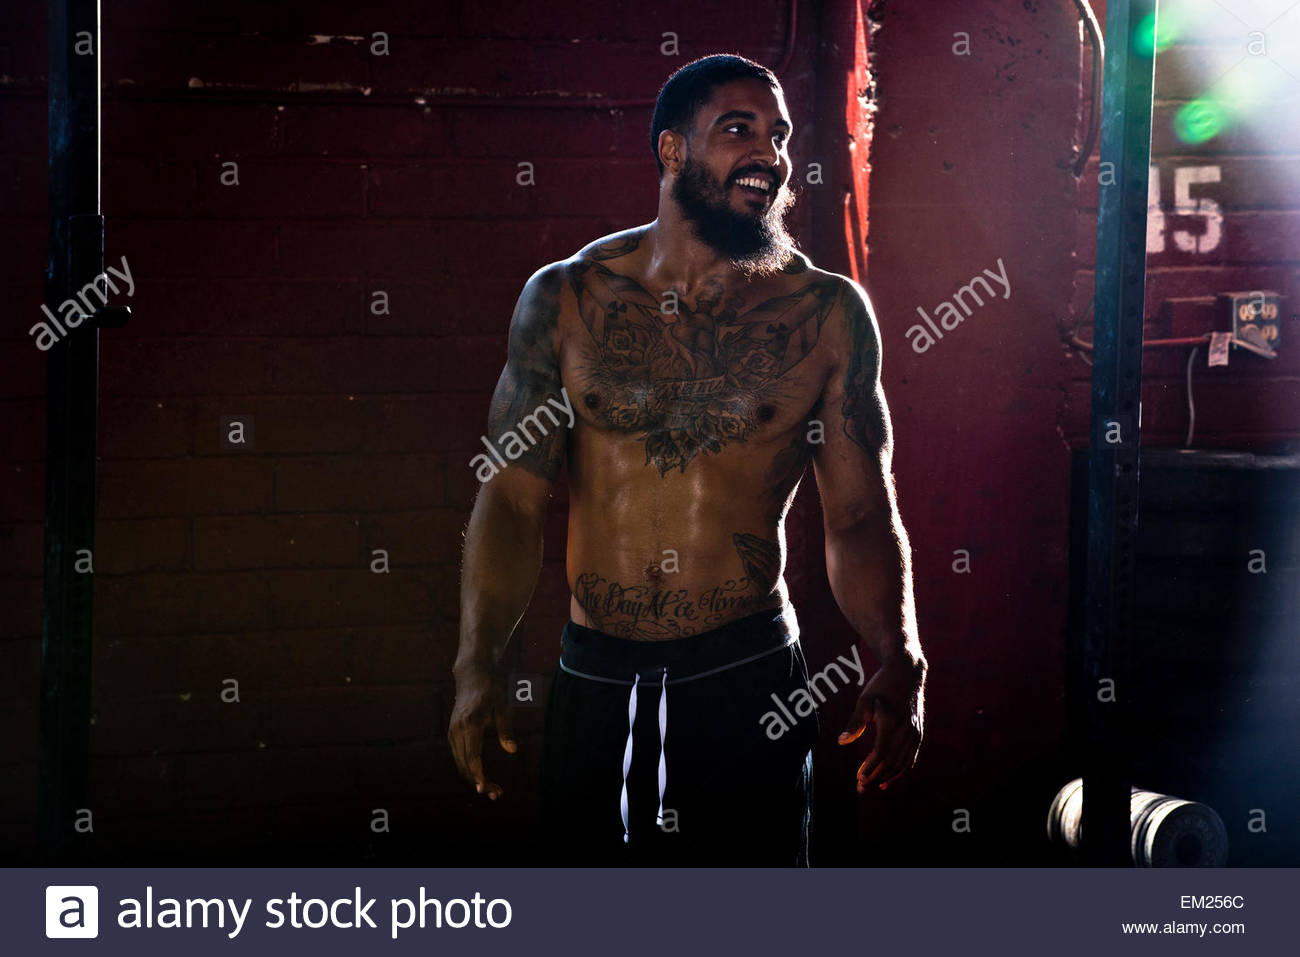 A crossfit athlete laughs after a workout. - Stock Image